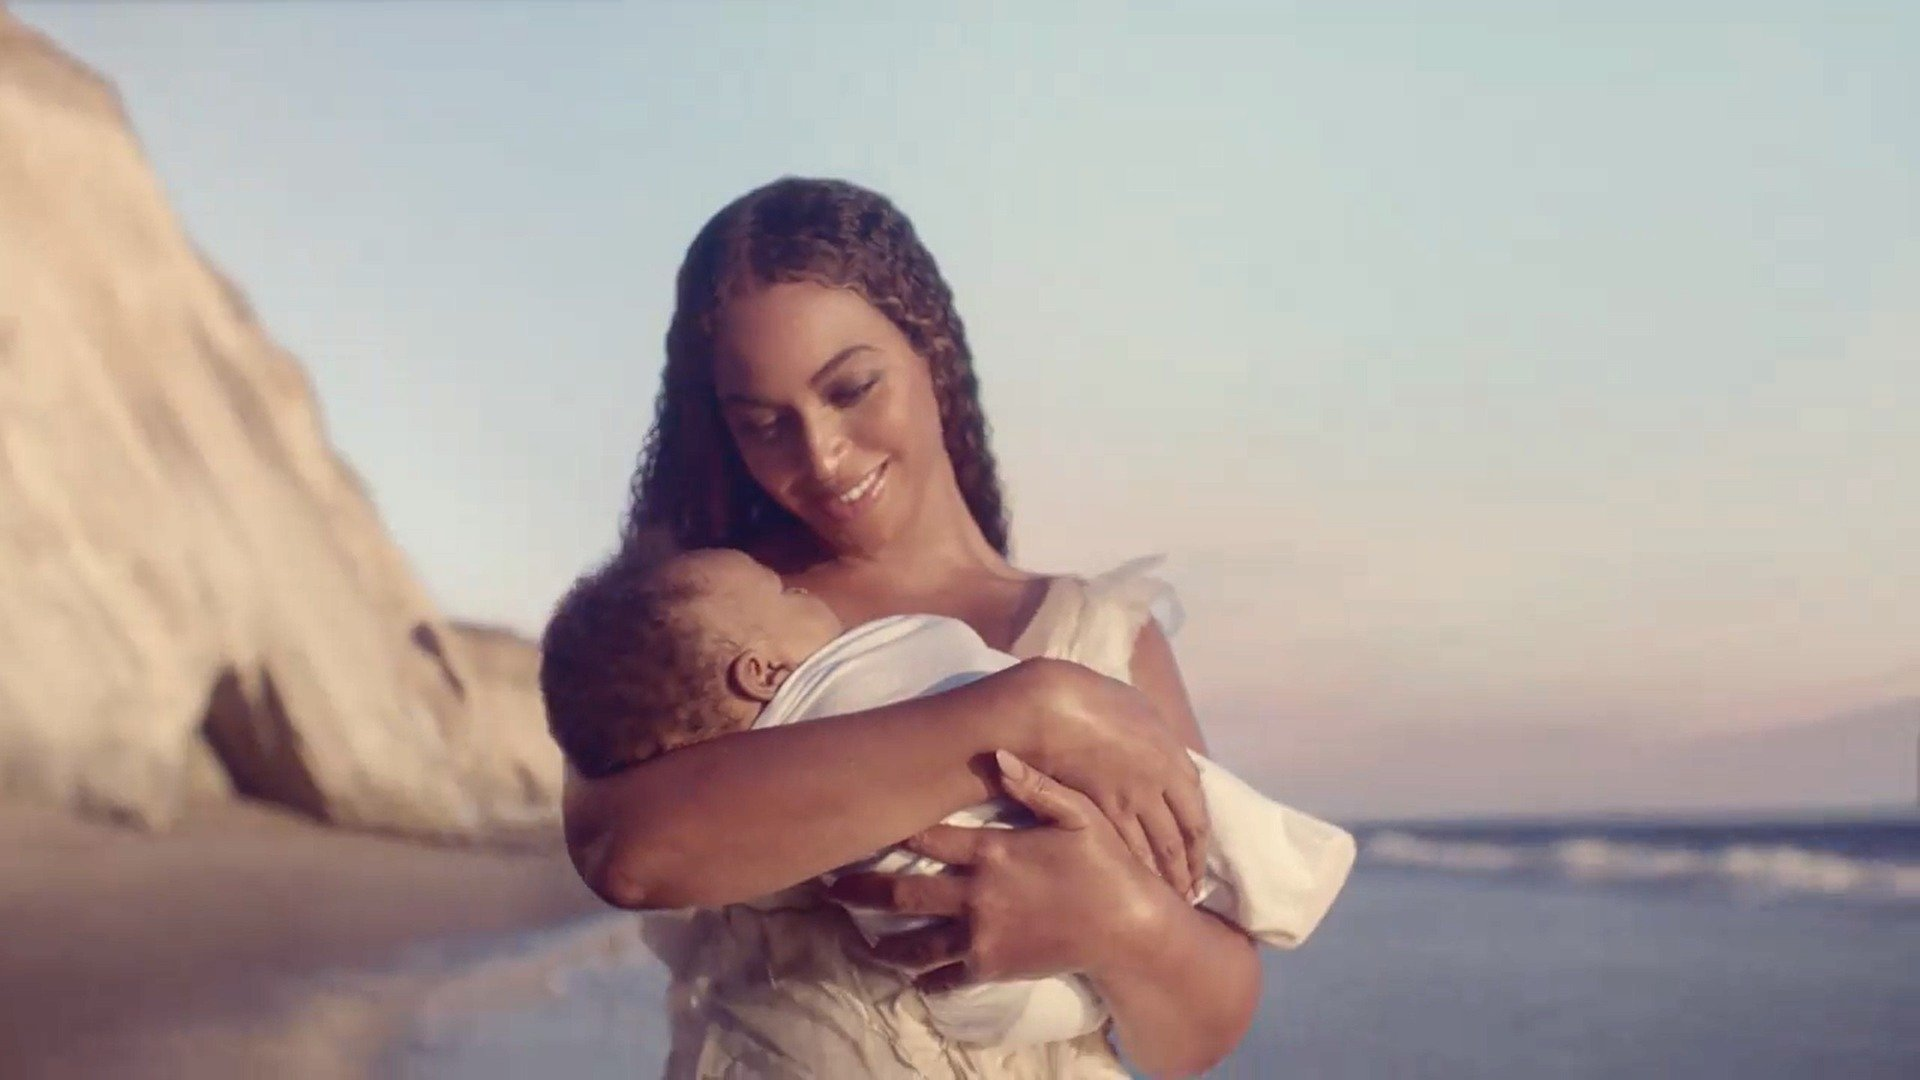 Beyoncé: il trailer del Visual album Black is King, dal 31 luglio su Disney+